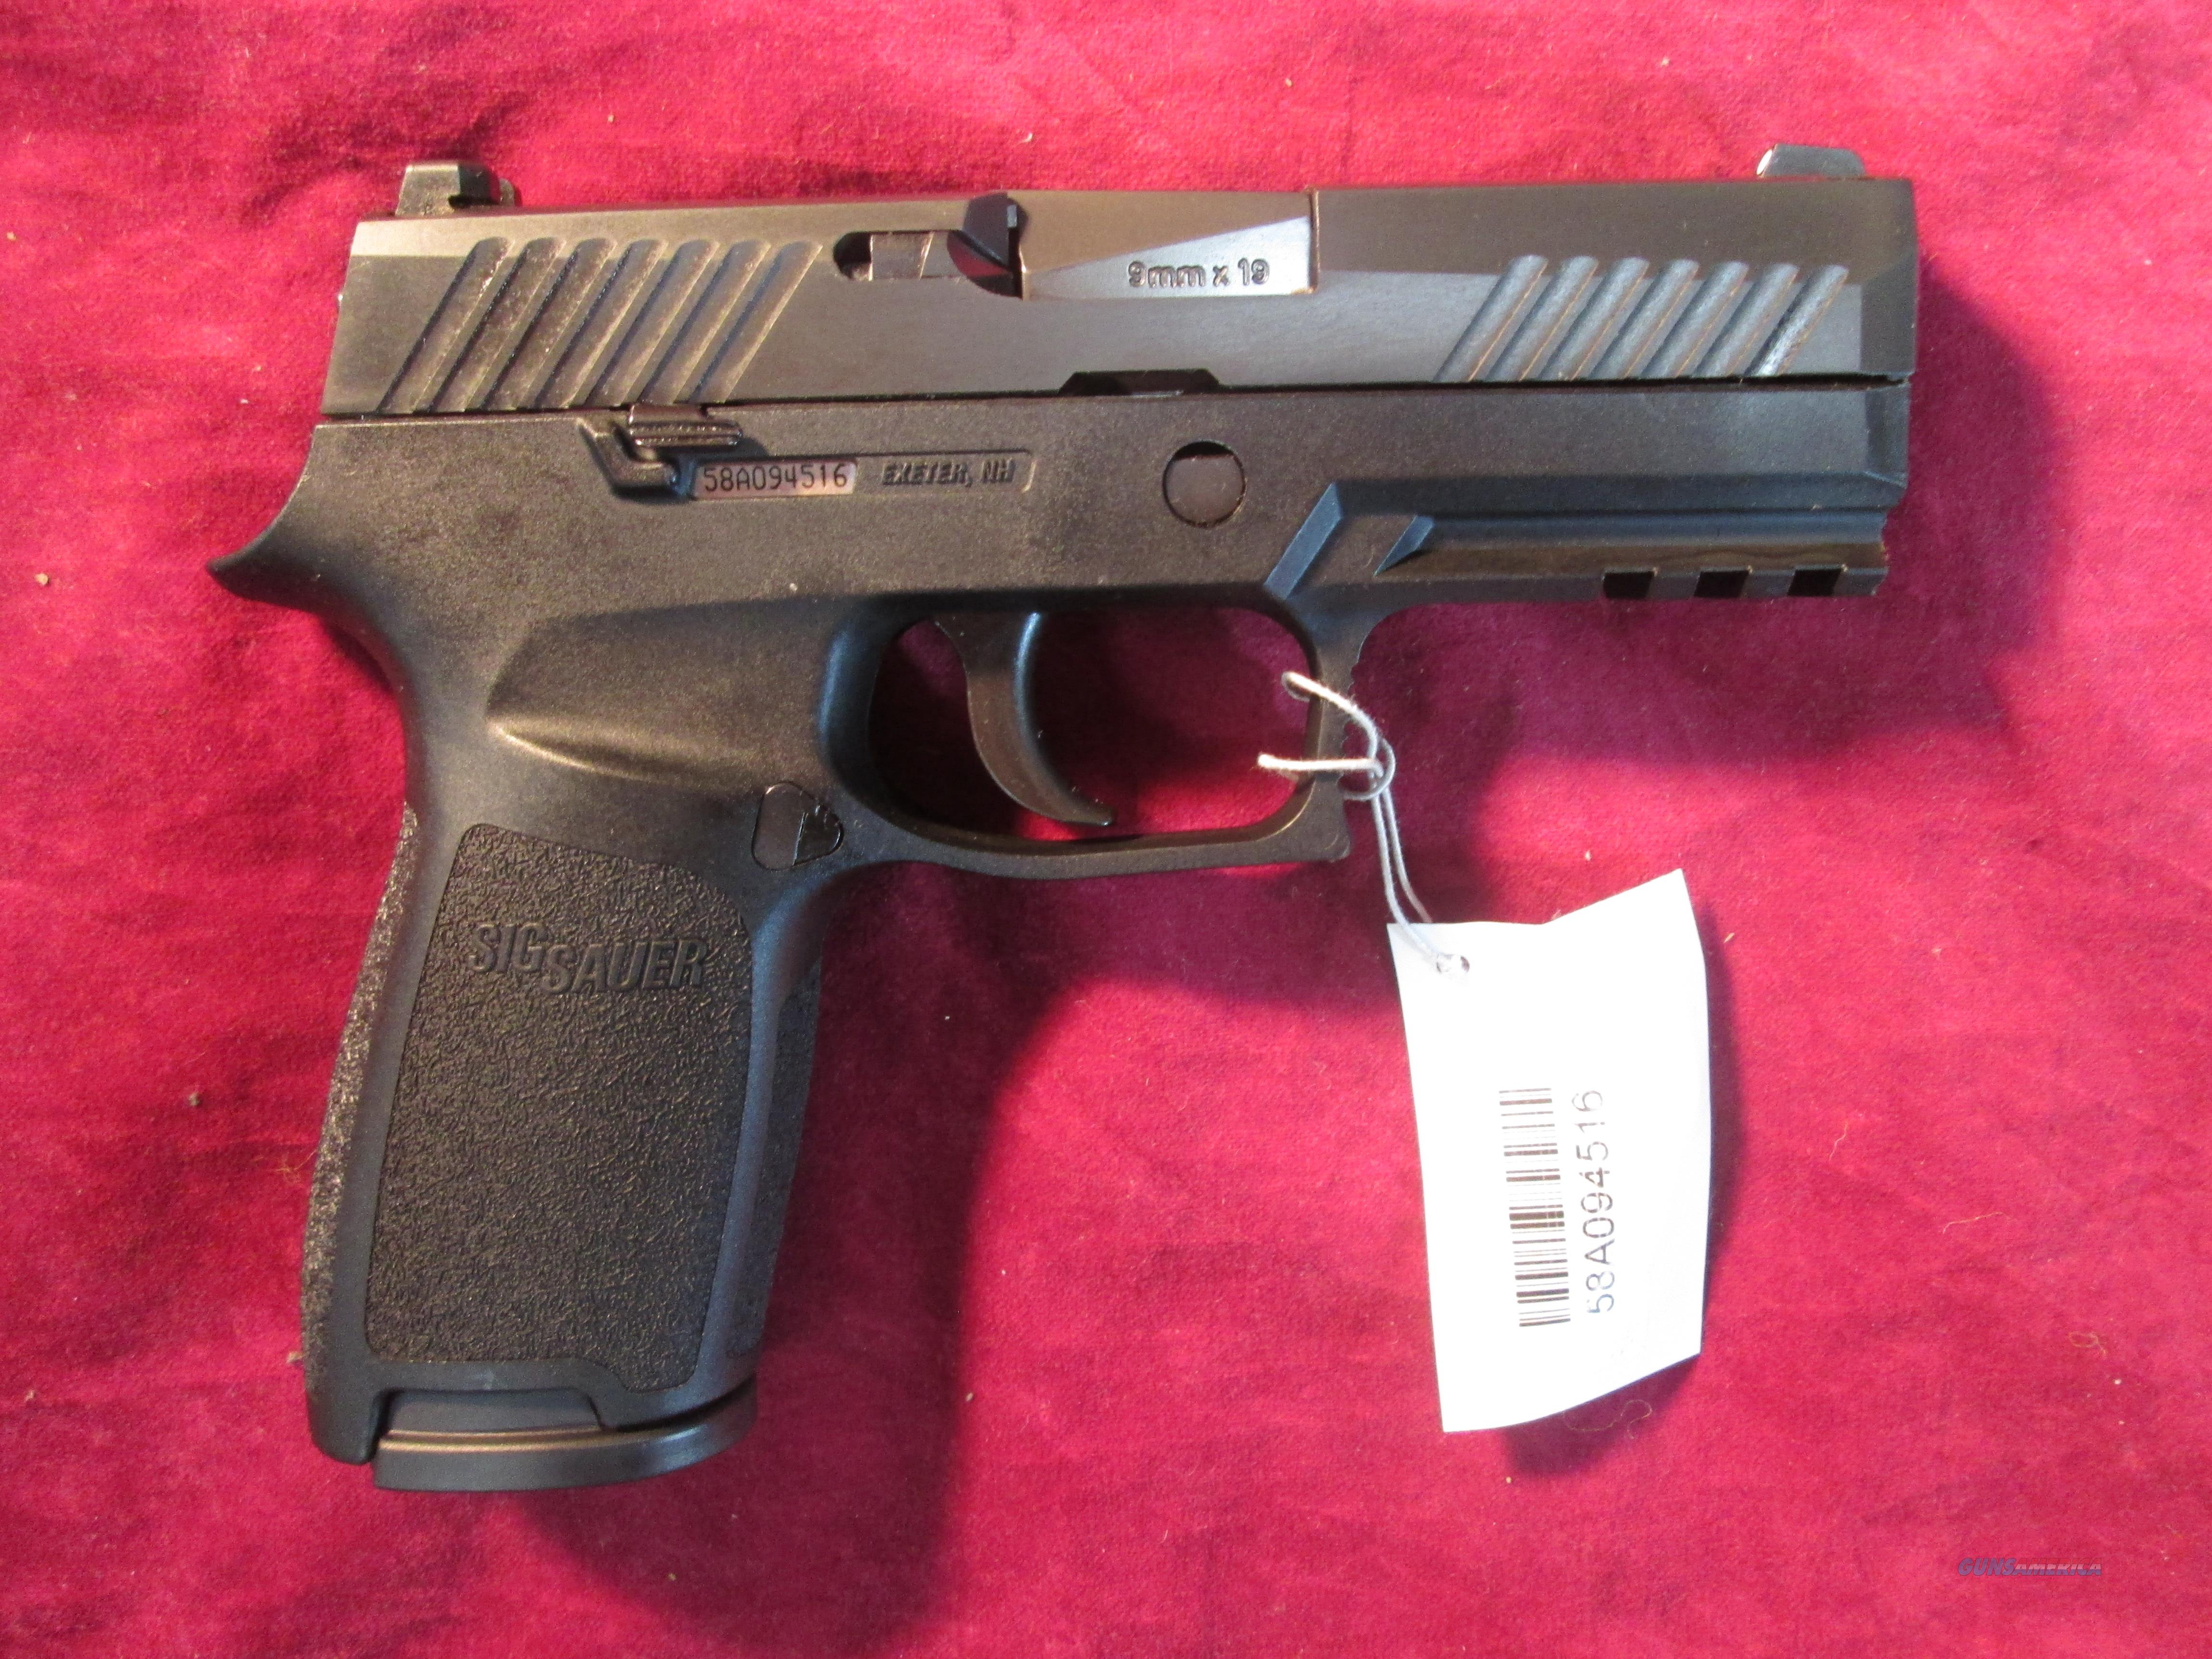 SIG SAUER P320 CARRY 9MM STRIKER FIRED PISTOL CONTRAST SIGHTS NEW (320CA-9-B)  Guns > Pistols > Sig - Sauer/Sigarms Pistols > P320